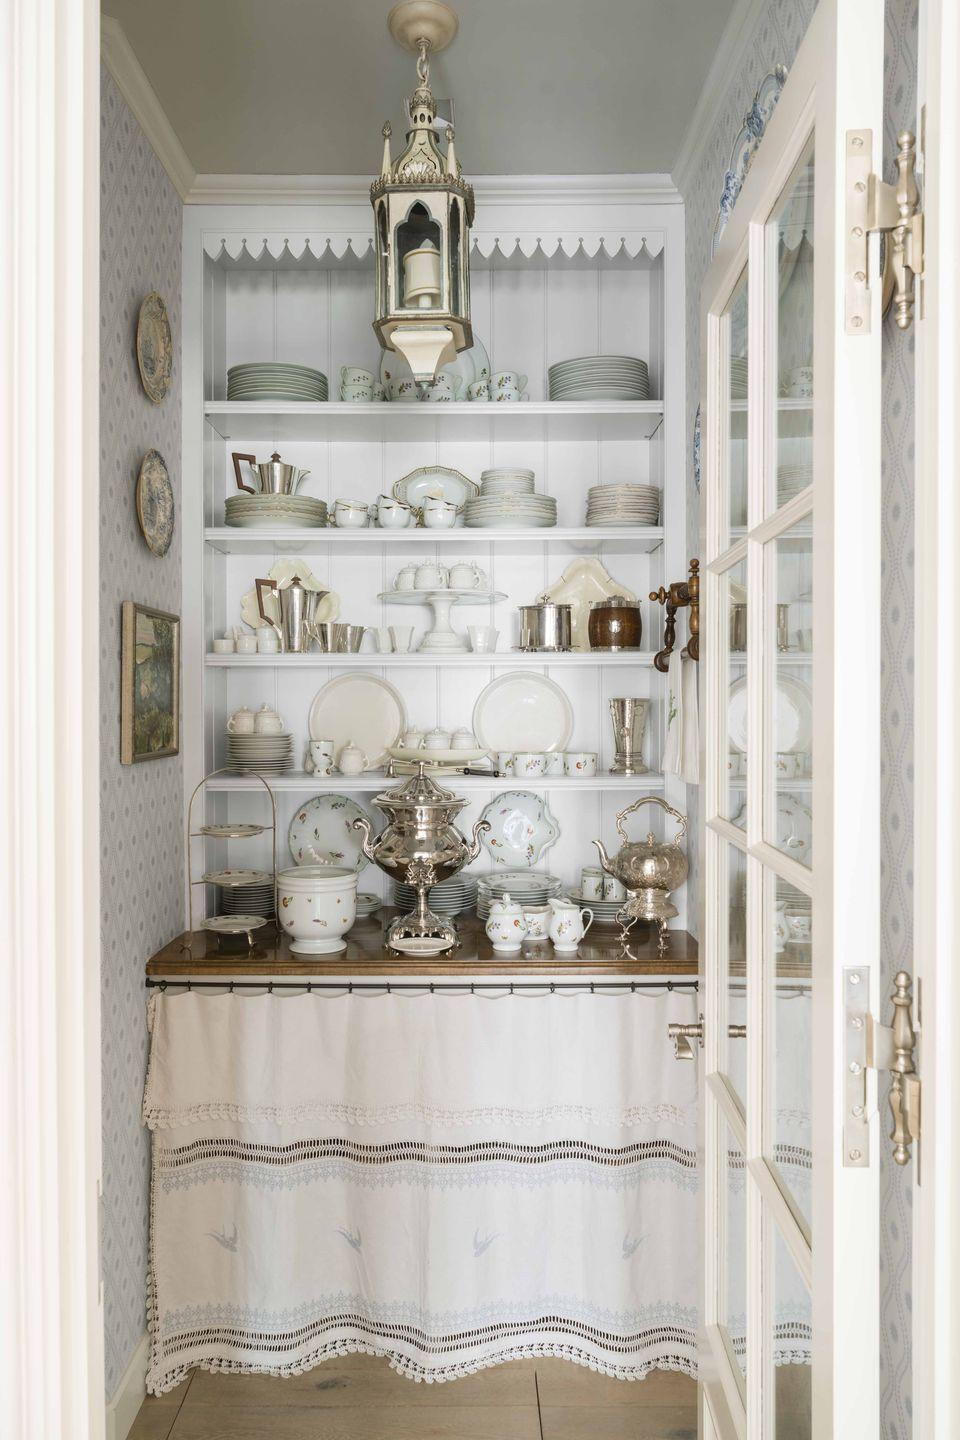 """<p>In this <a href=""""https://www.veranda.com/decorating-ideas/a9978895/dallas-spanish-colonial/"""" rel=""""nofollow noopener"""" target=""""_blank"""" data-ylk=""""slk:historic Dallas home"""" class=""""link rapid-noclick-resp"""">historic Dallas home</a>, designer <a href=""""http://www.cathy-kincaid.com/"""" rel=""""nofollow noopener"""" target=""""_blank"""" data-ylk=""""slk:Cathy Kincaid"""" class=""""link rapid-noclick-resp"""">Cathy Kincaid</a> converted a small closet into a butler's pantry which doubles as both a china and silver display as well as a beverage serving station. A textile hung below the wooden counter conceals additional storage. The wallpaper is by <a href=""""https://www.stylelibrary.com/zoffany/"""" rel=""""nofollow noopener"""" target=""""_blank"""" data-ylk=""""slk:Zoffany"""" class=""""link rapid-noclick-resp"""">Zoffany</a>. </p><p><a class=""""link rapid-noclick-resp"""" href=""""https://go.redirectingat.com?id=74968X1596630&url=https%3A%2F%2Fwww.etsy.com%2Flisting%2F659834829%2Fsilver-plated-coffee-pot-sheridan%3Fga_order%3Dmost_relevant%26ga_search_type%3Dall%26ga_view_type%3Dgallery%26ga_search_query%3Dsilver%2Bcoffee%2Bpot%26ref%3Dsr_gallery-1-4%26cns%3D1&sref=https%3A%2F%2Fwww.veranda.com%2Fdecorating-ideas%2Fg28837805%2Fhome-bar-ideas%2F"""" rel=""""nofollow noopener"""" target=""""_blank"""" data-ylk=""""slk:Find Similar Vintage Servingware Here"""">Find Similar Vintage Servingware Here</a></p>"""